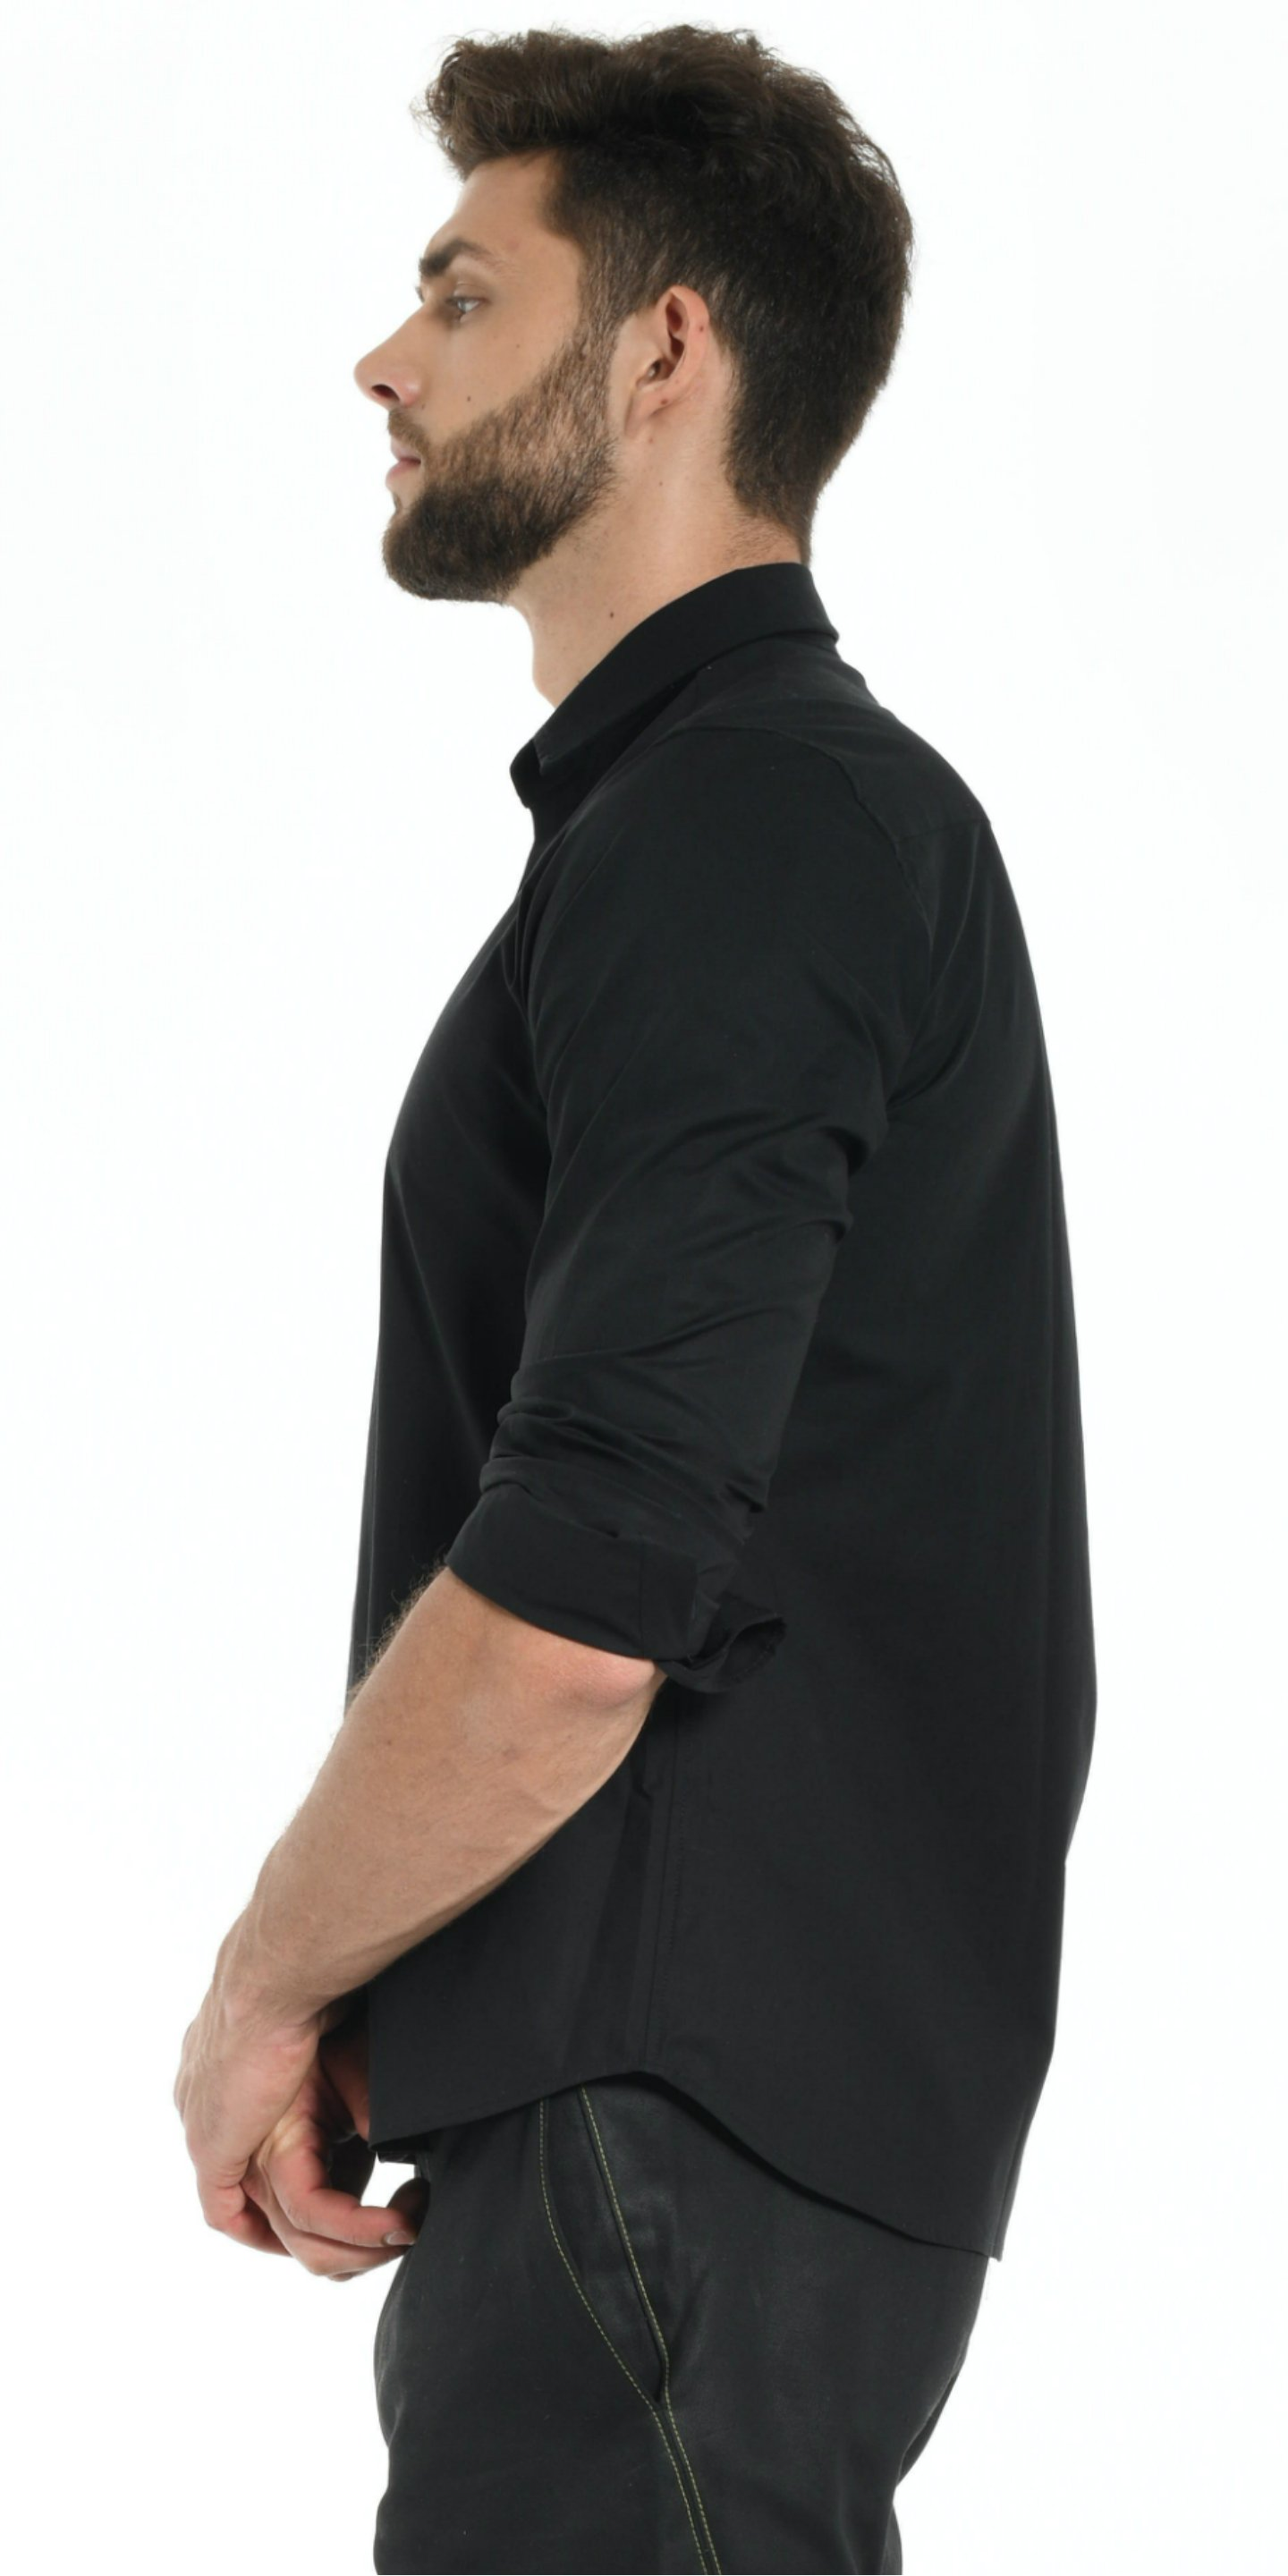 BLACK SHIRT from BEARD & FRINGE